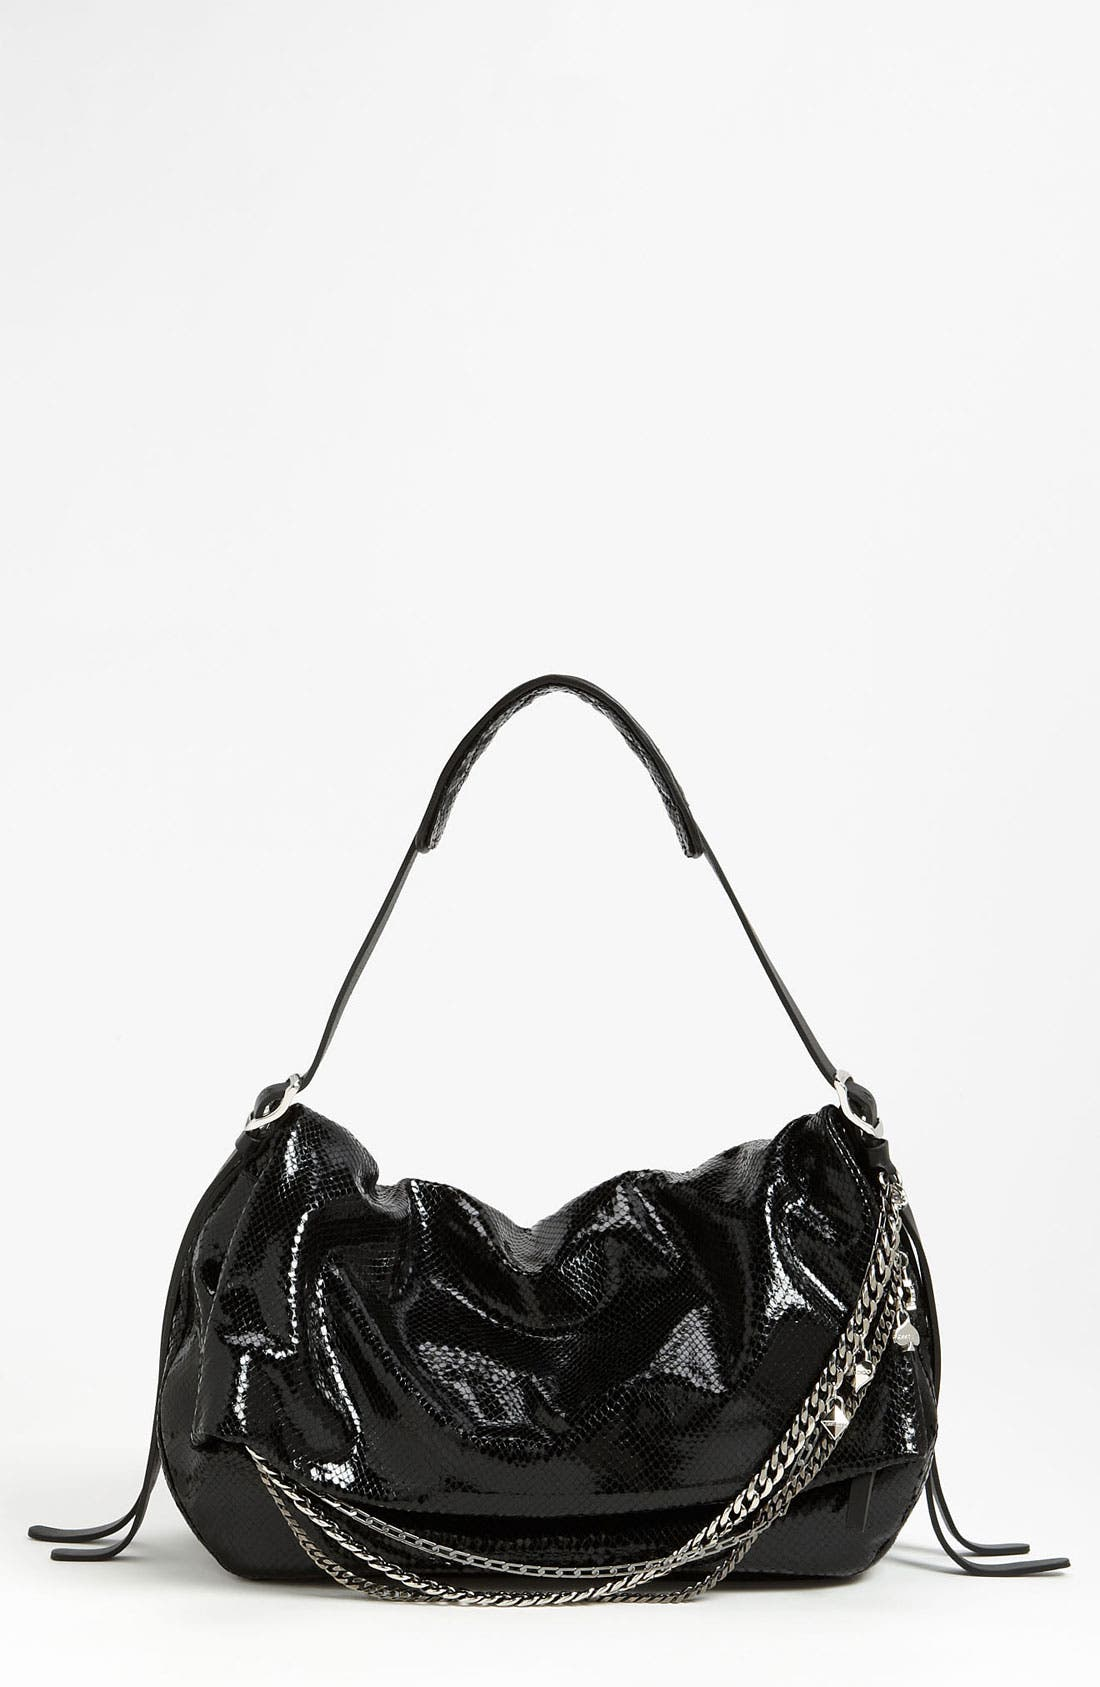 Alternate Image 1 Selected - Jimmy Choo 'Biker' Snake Embossed Leather Shoulder Bag